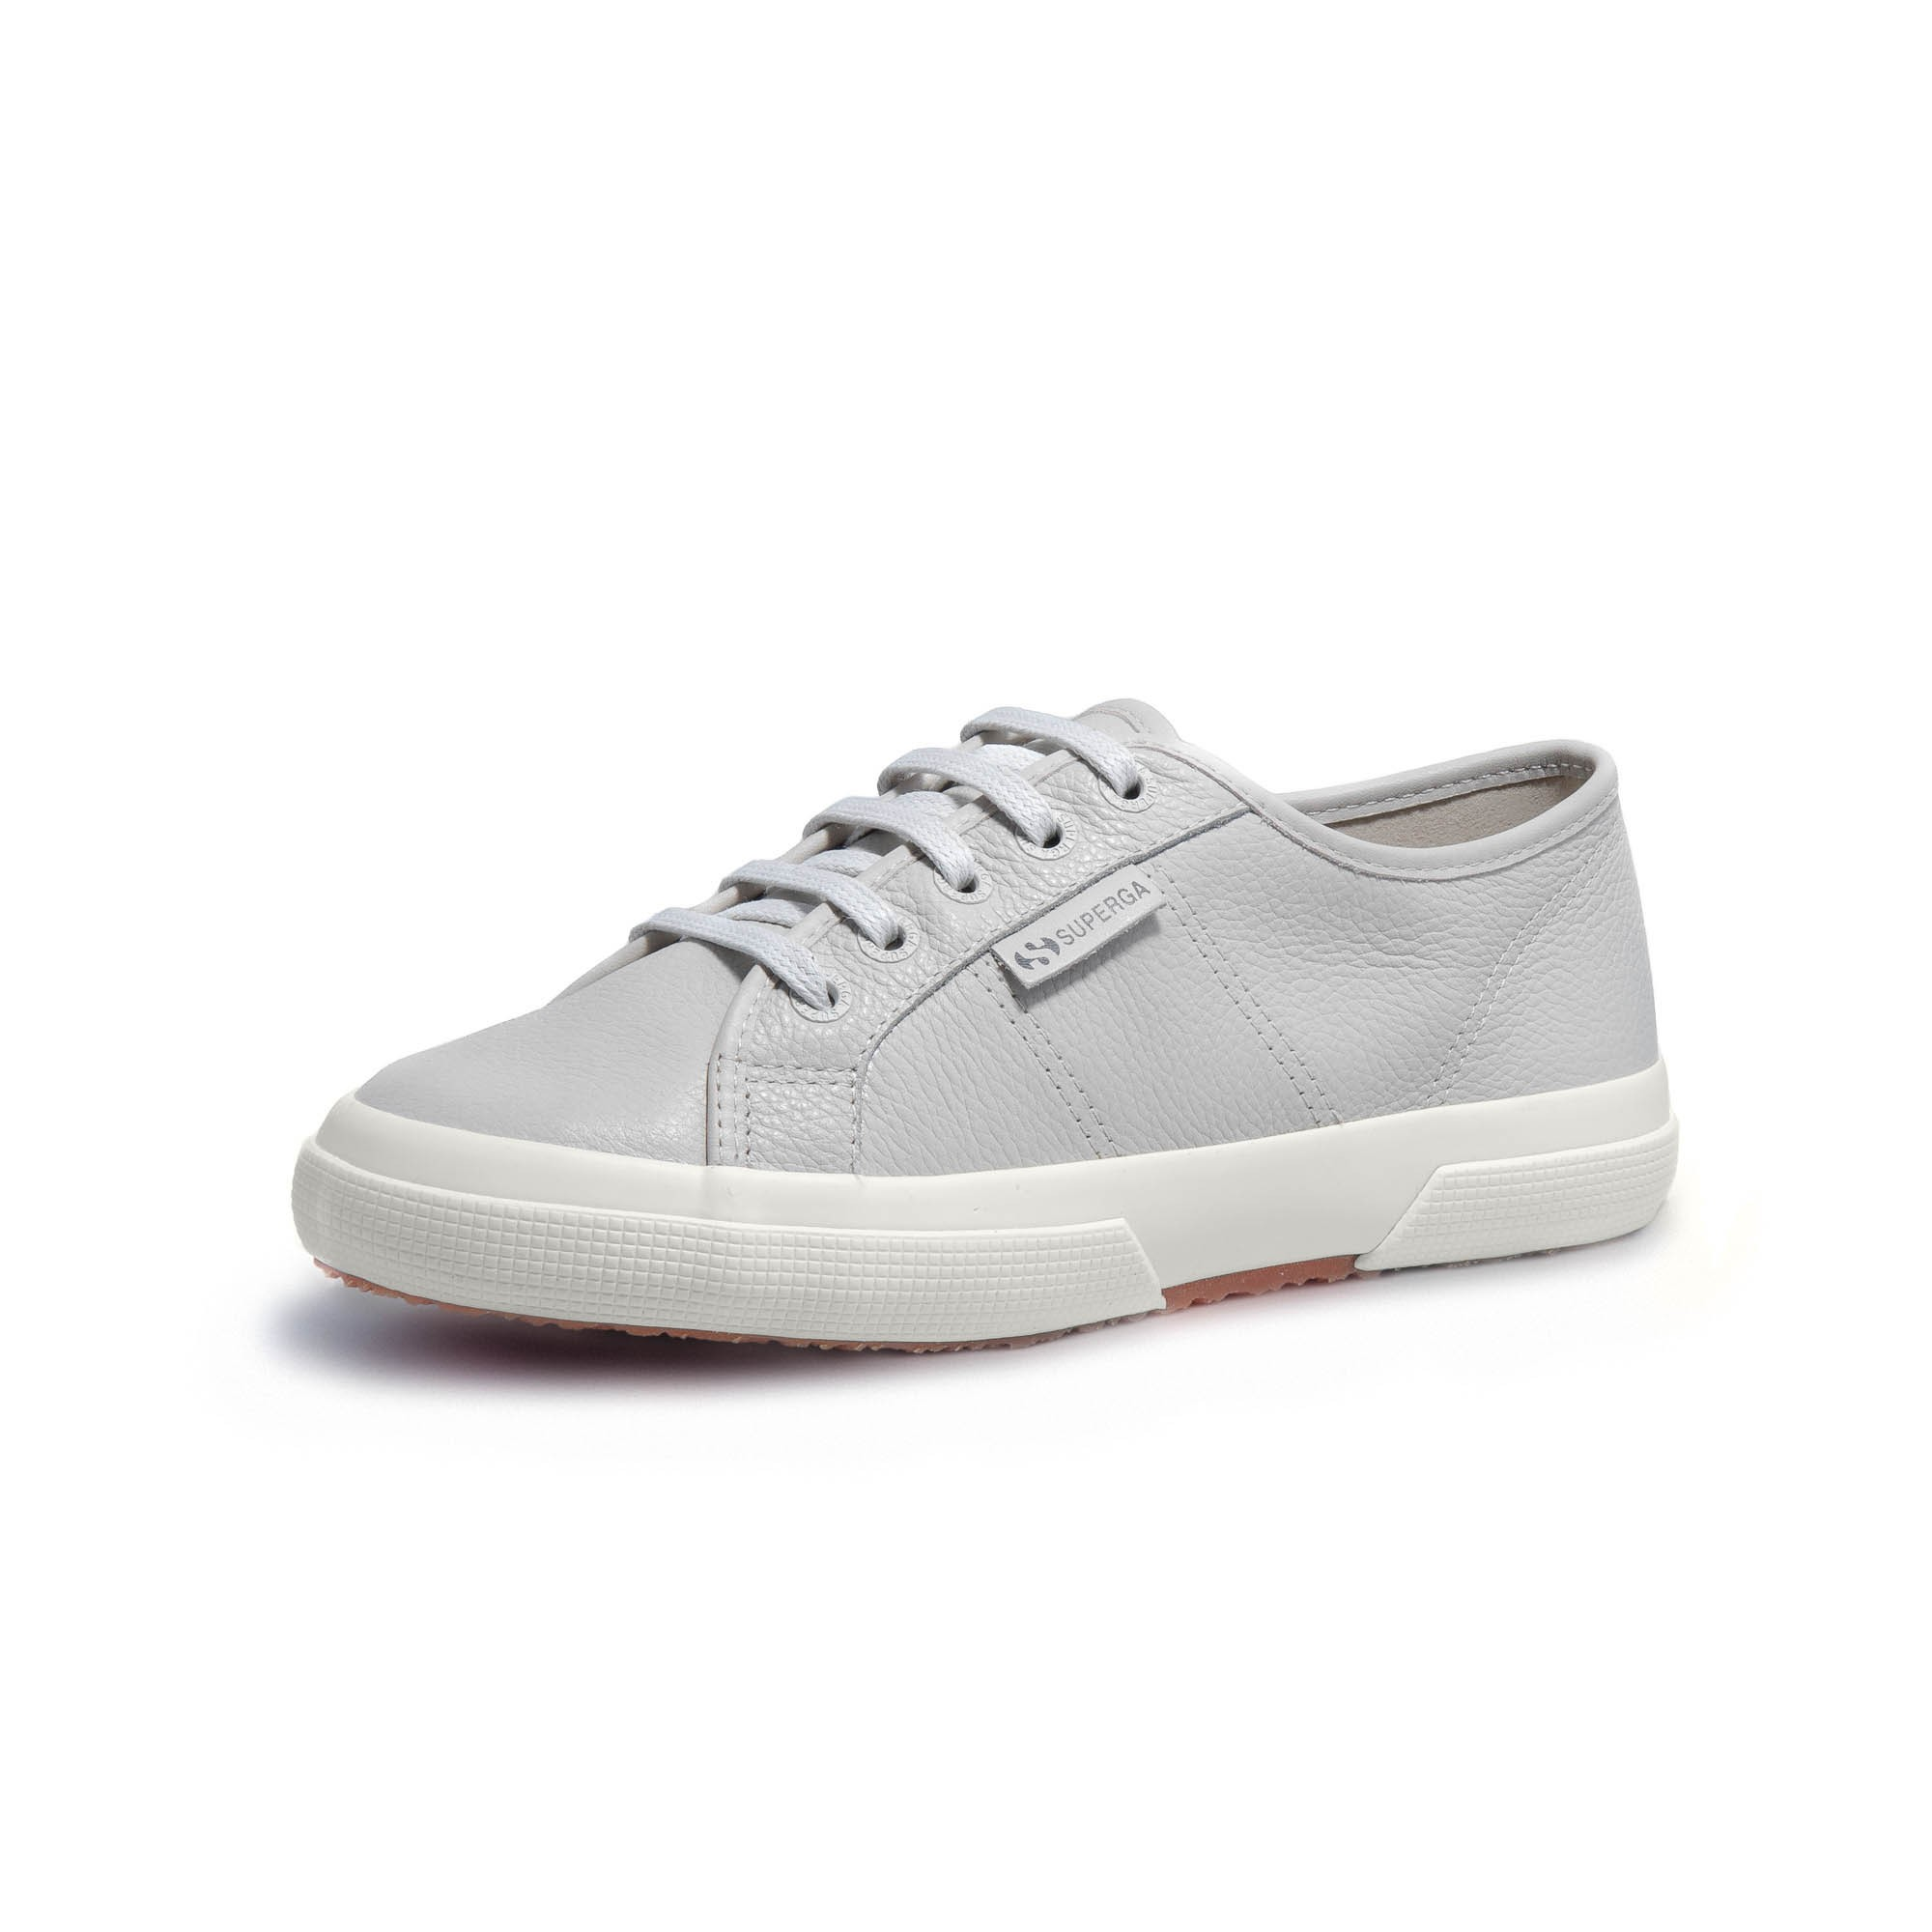 2750 LEATHER GRIS